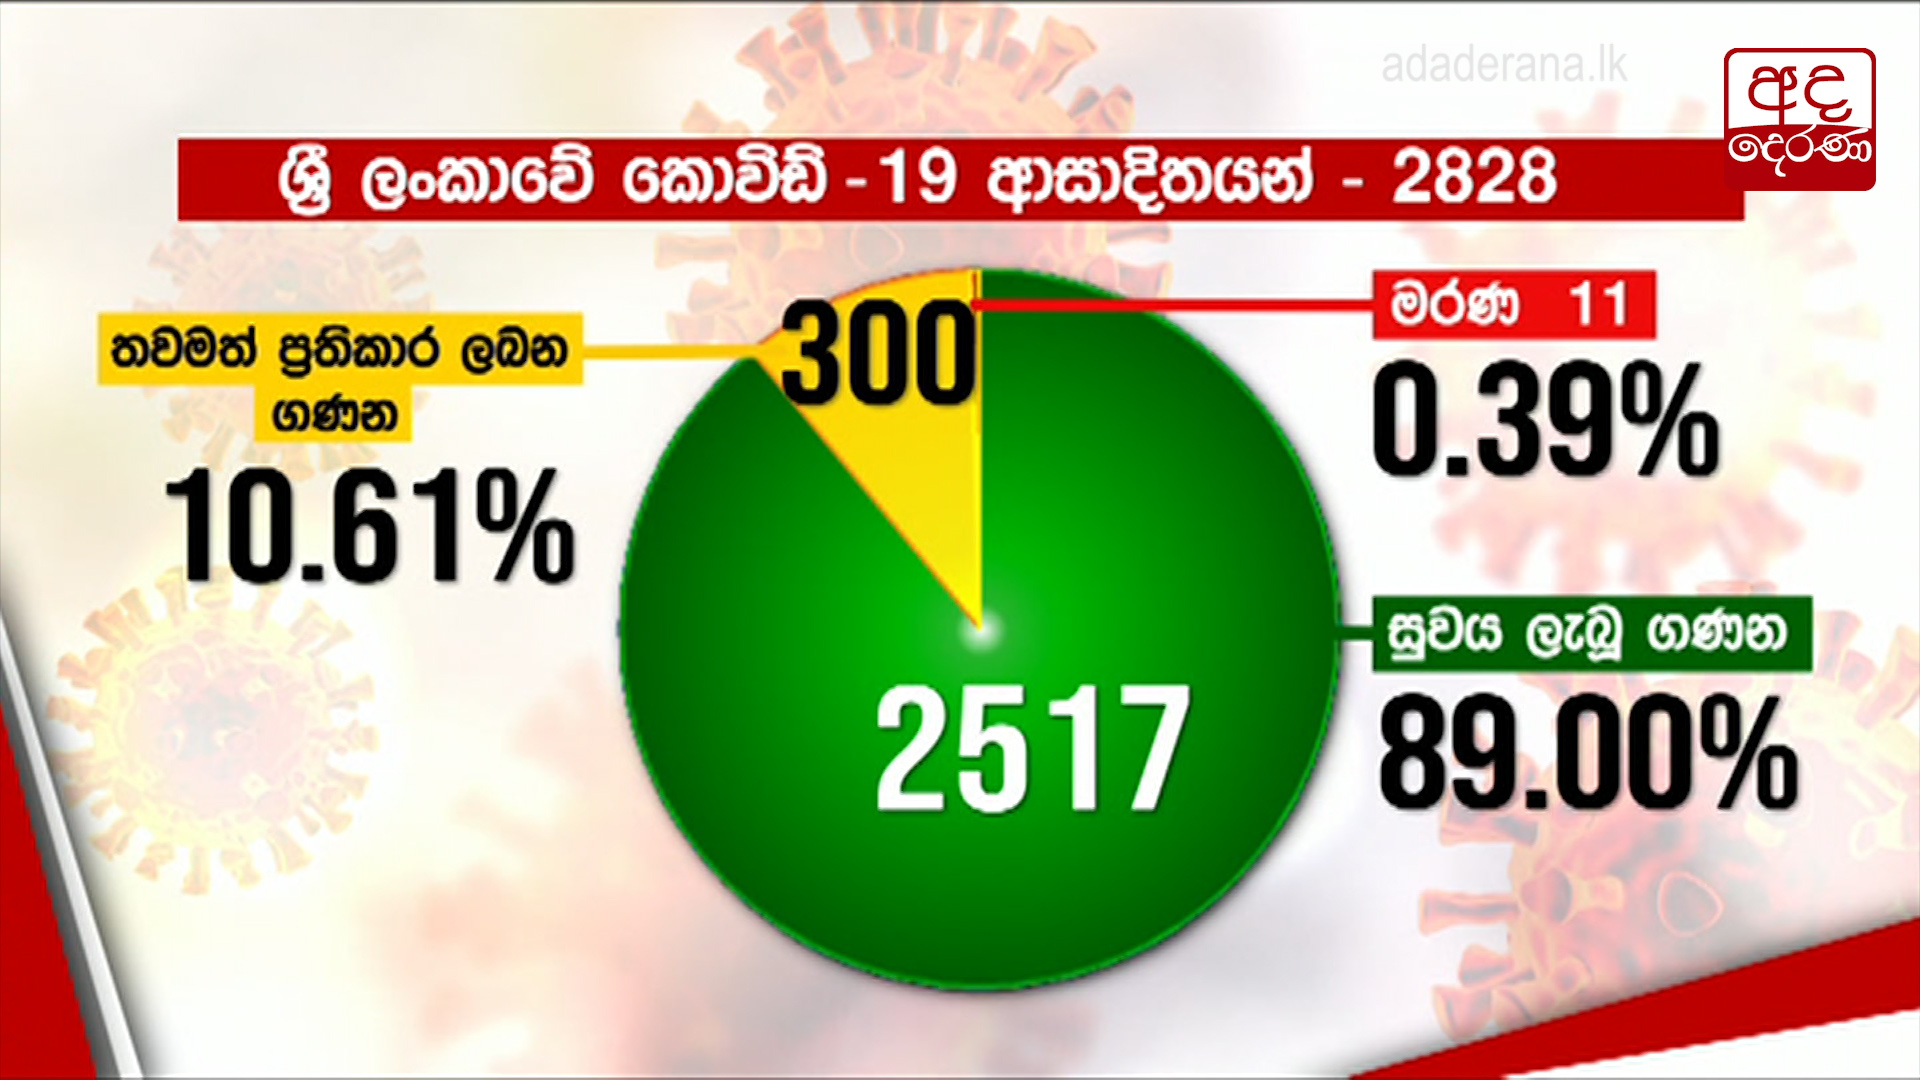 COVID-19 infections in Sri Lanka rise to 2,697